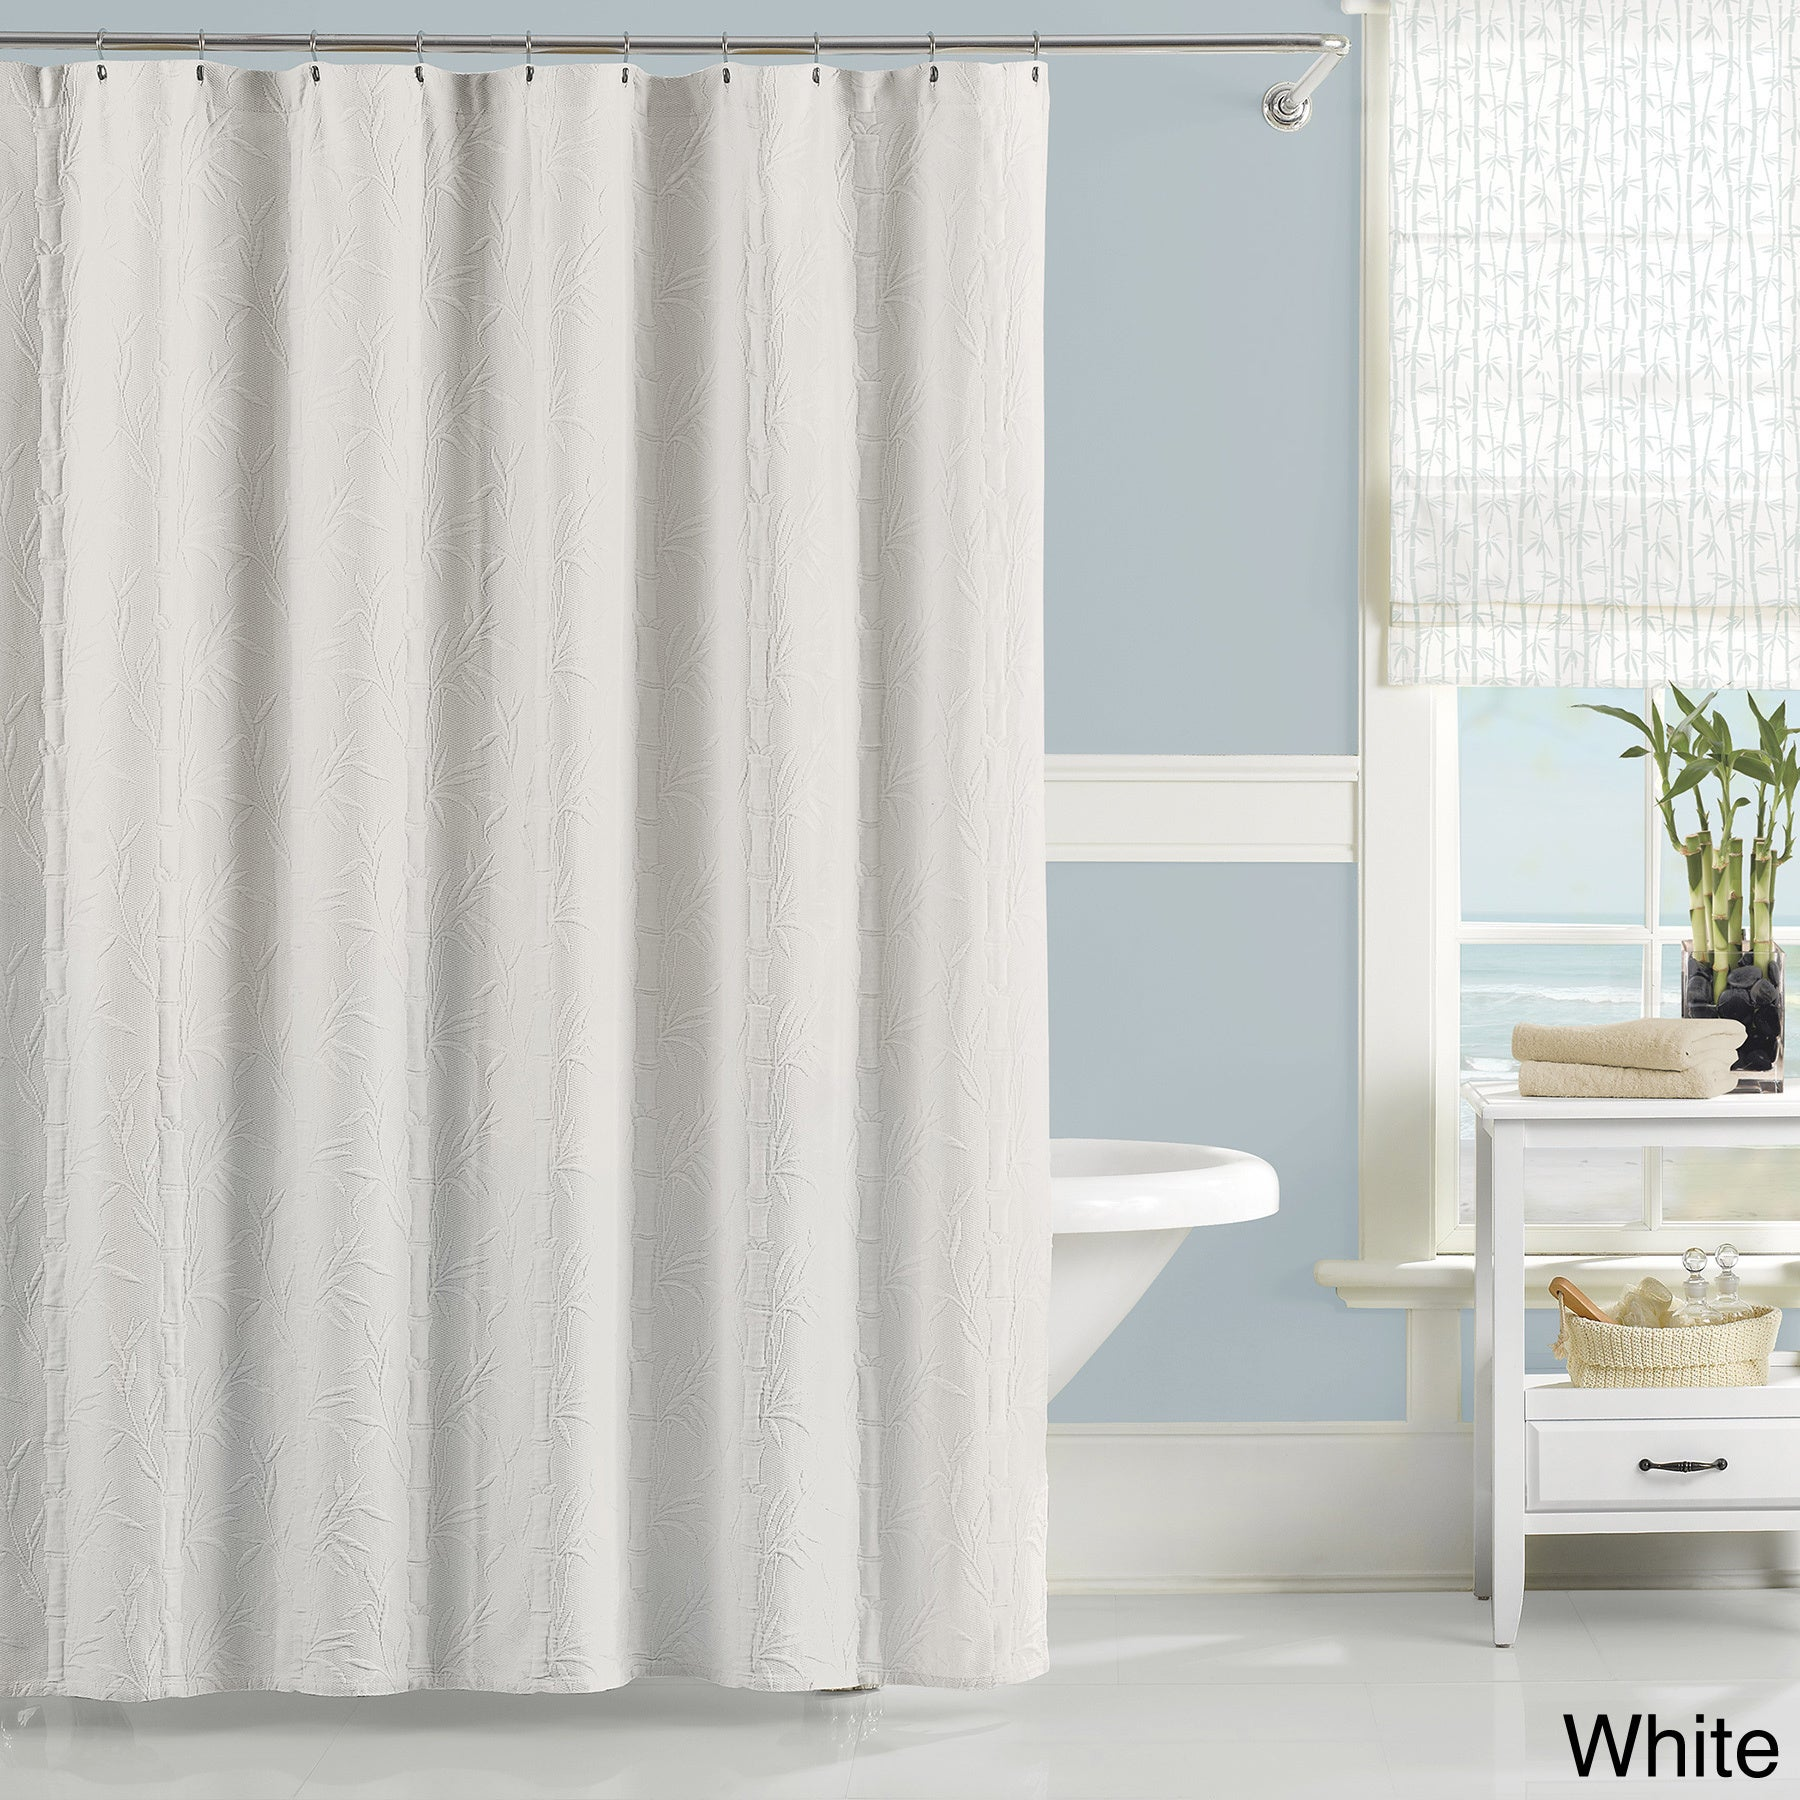 white canada en curtain walmart shower waffle peva fabric hometrends curtains tan liner ip with